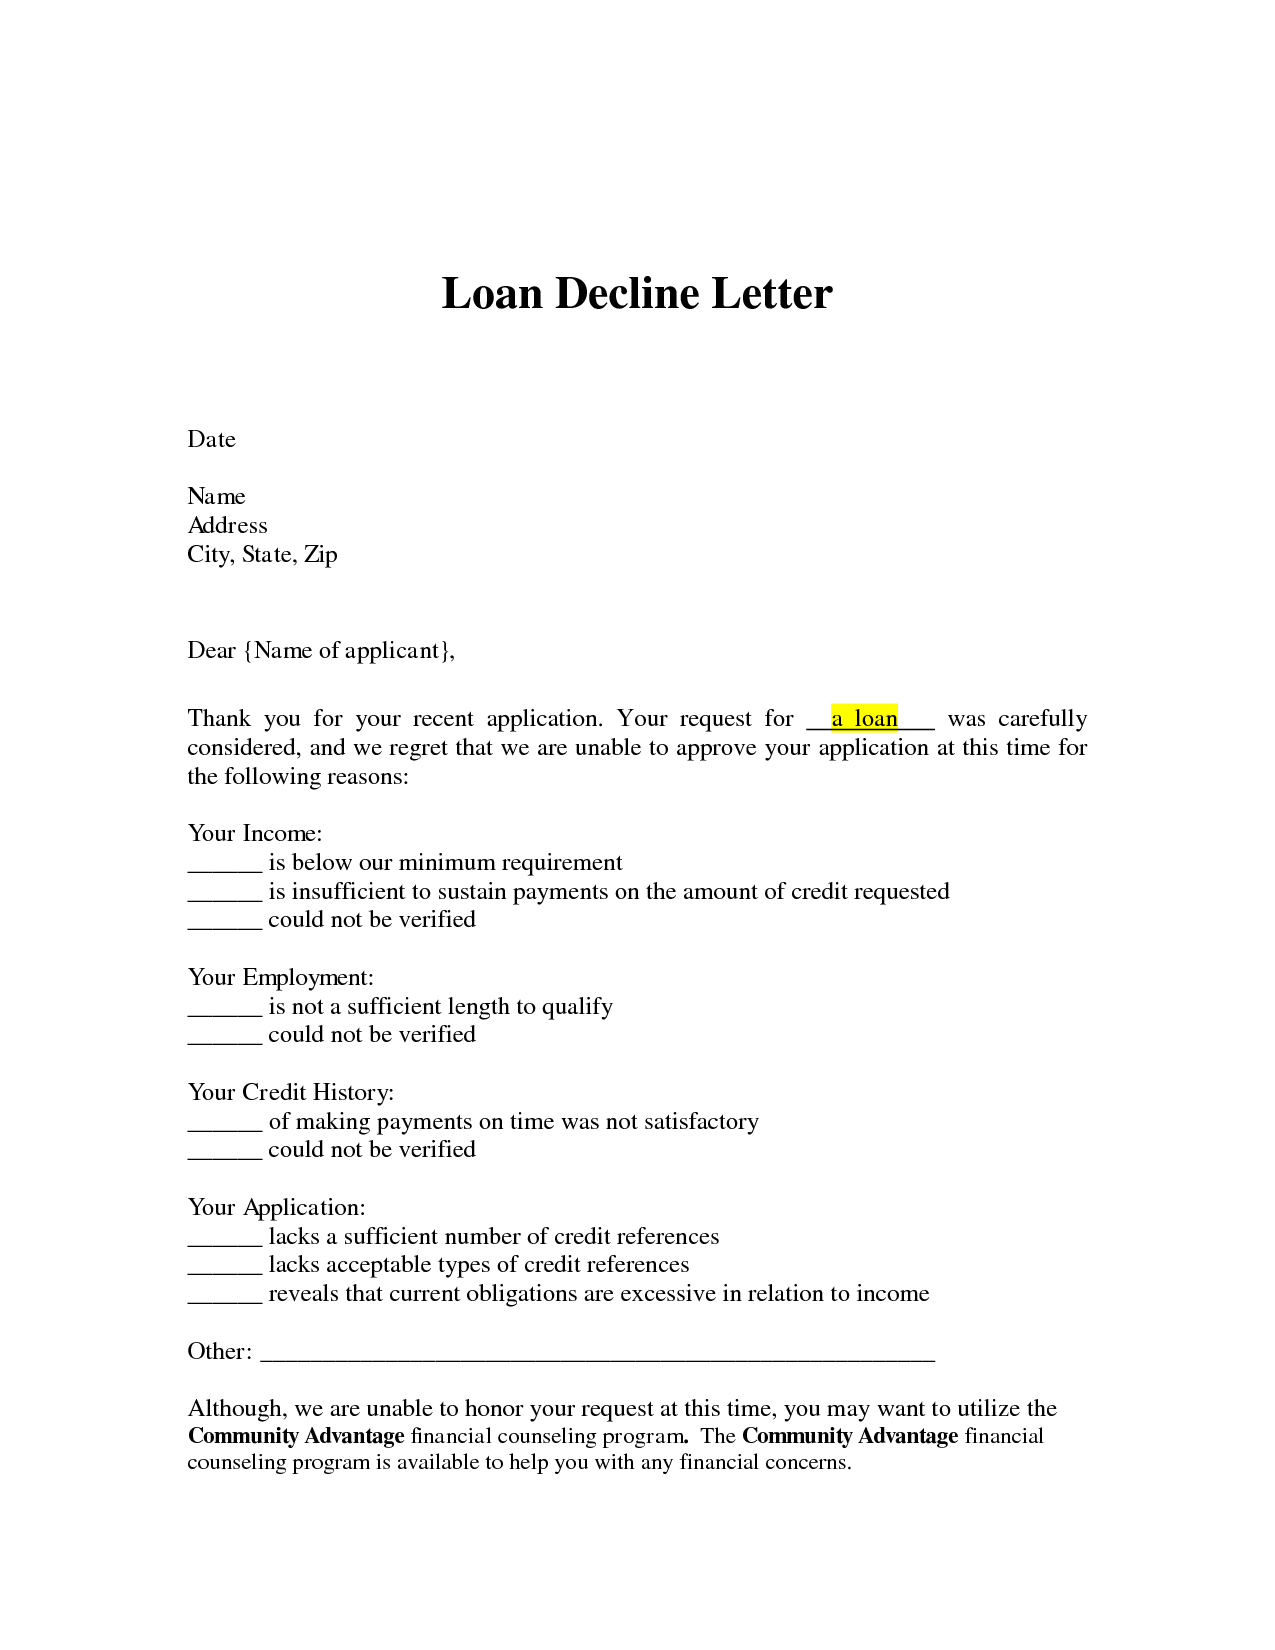 Loan decline letter loan denial letter arrives you can use that loan decline letter loan denial letter arrives you can use that information to see if your credit check matches up with the lenders reasons for denial altavistaventures Gallery